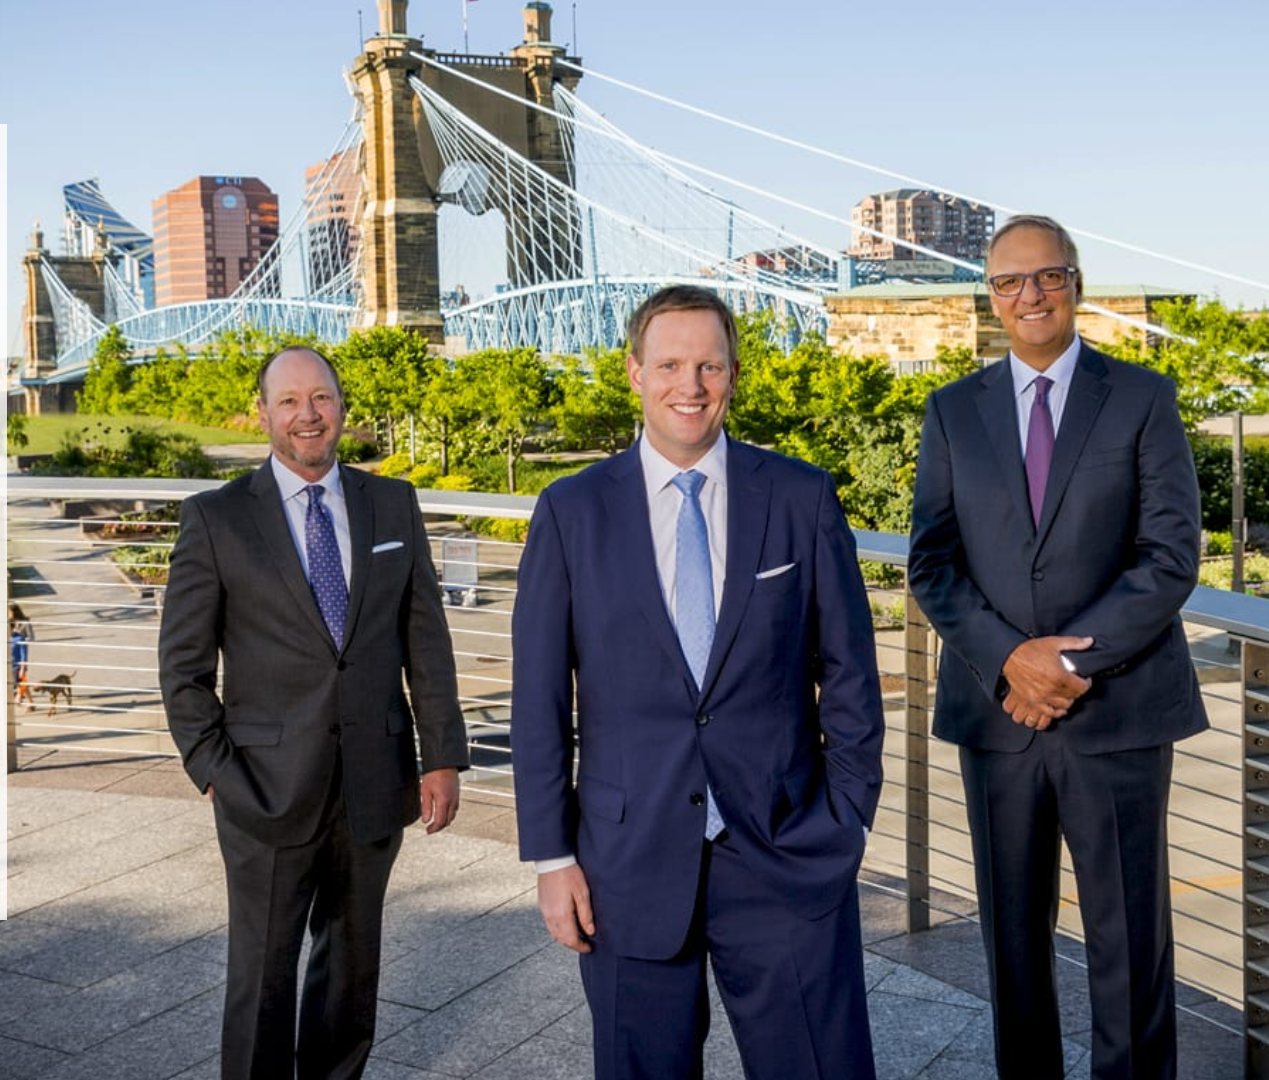 Access here alternative investment news about Nky Private Equity Firm Announces Closing On Debut Fund | The River City News